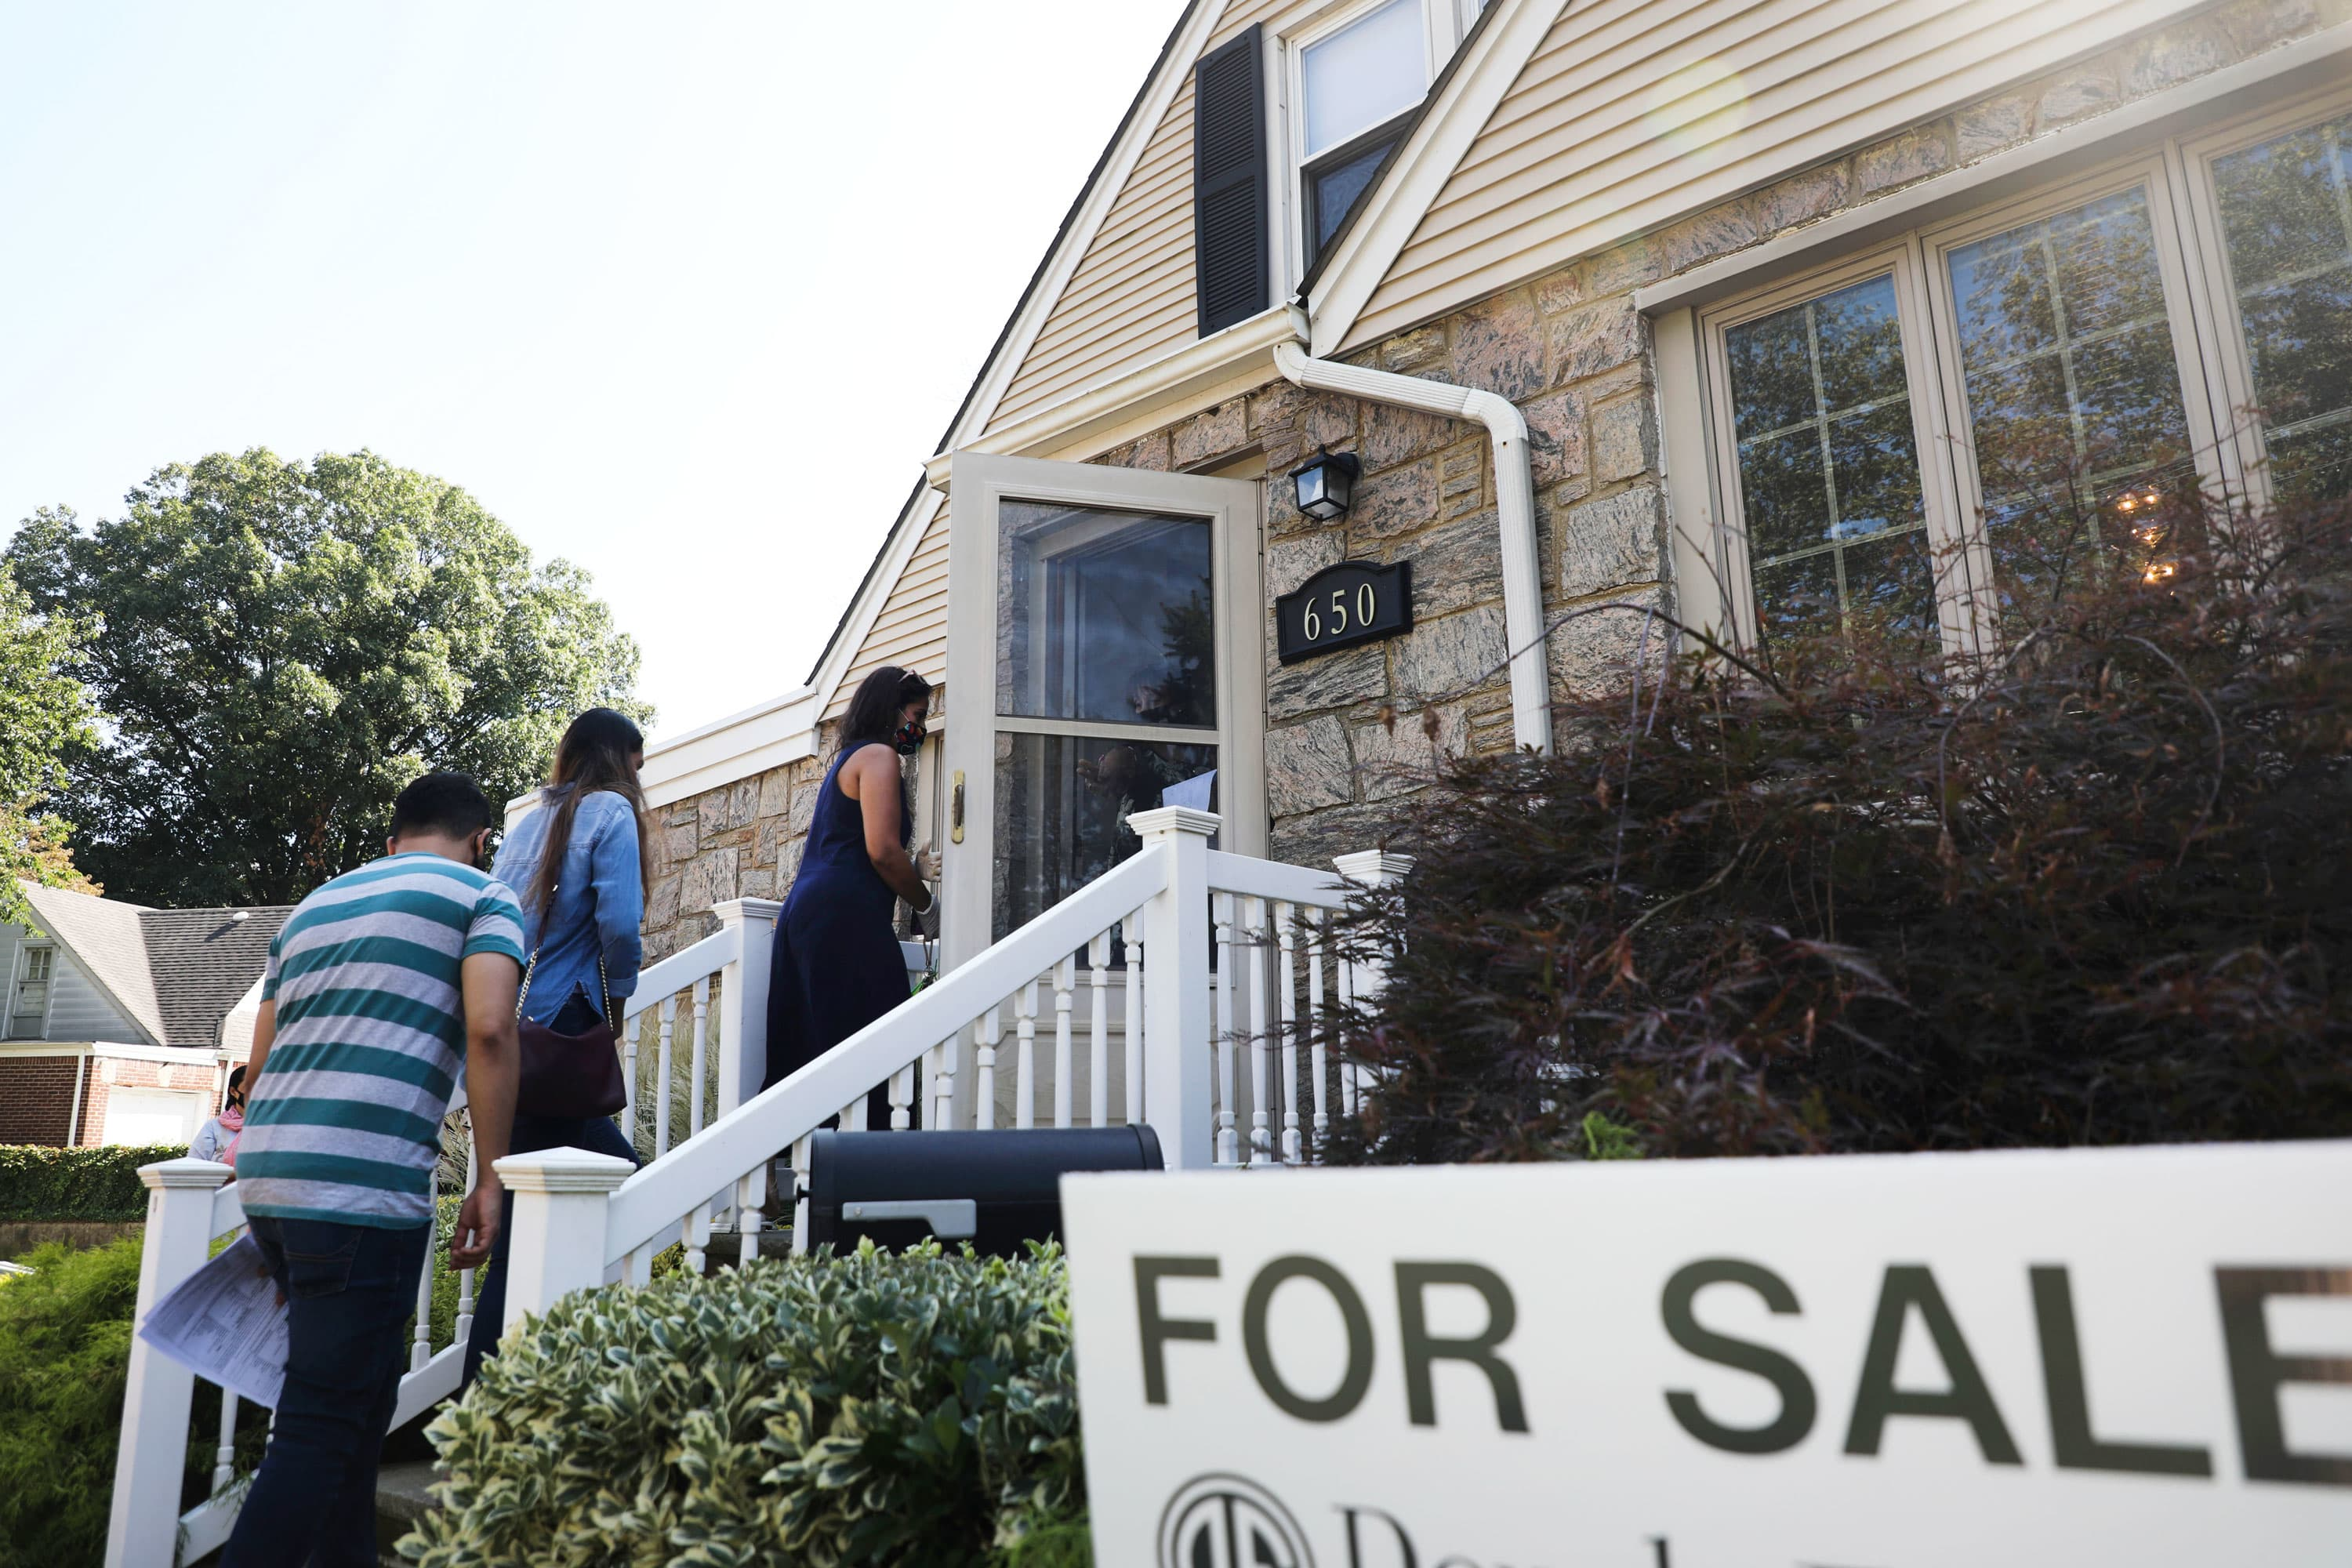 Home prices see biggest spike in 6 years in September, according to S&P Case Shiller